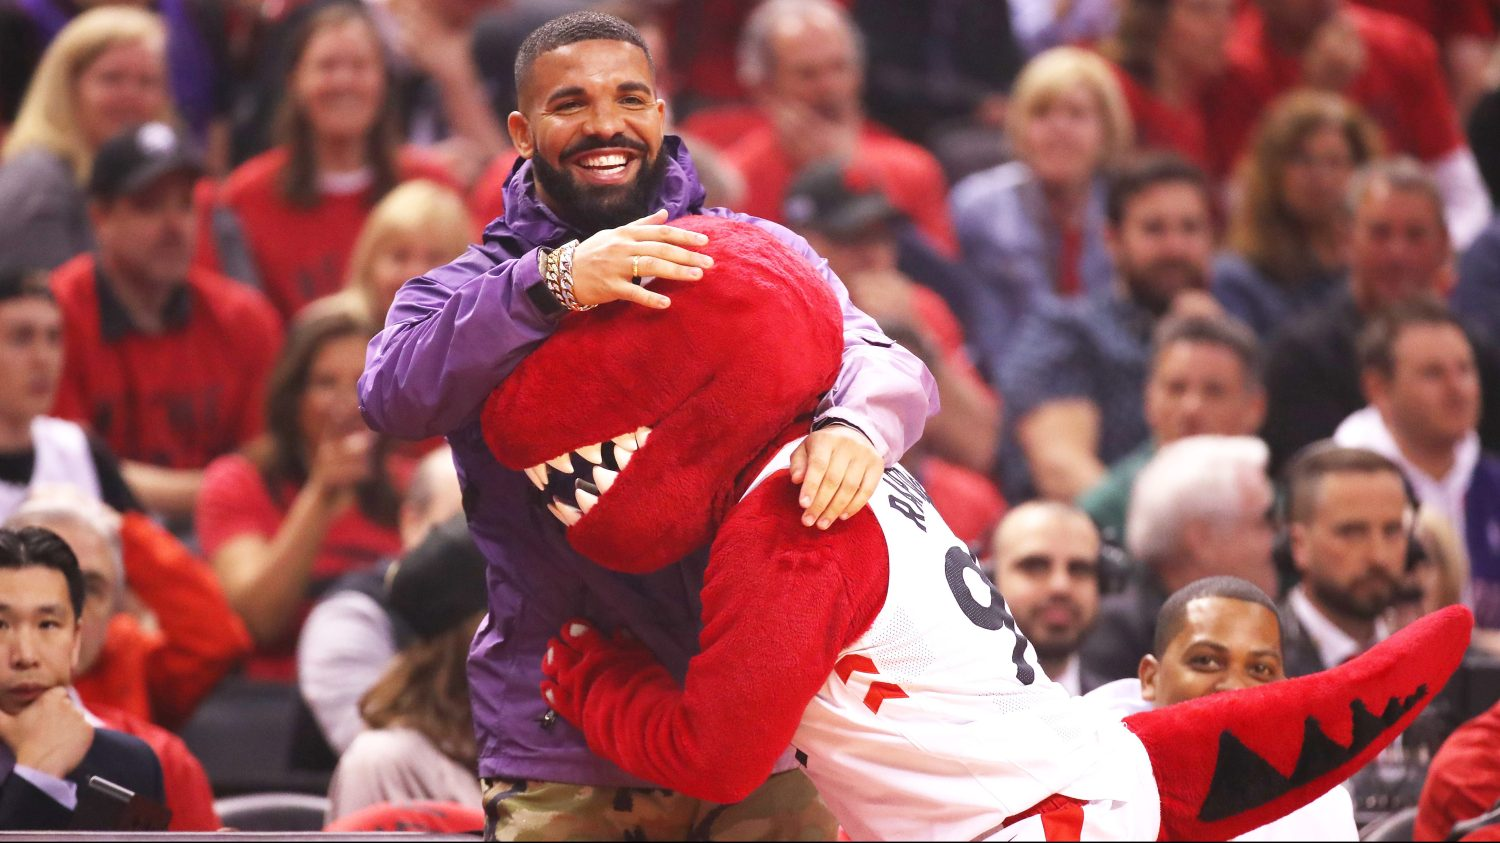 Raptors superfan Drake is the NBA's biggest celebrity playoff